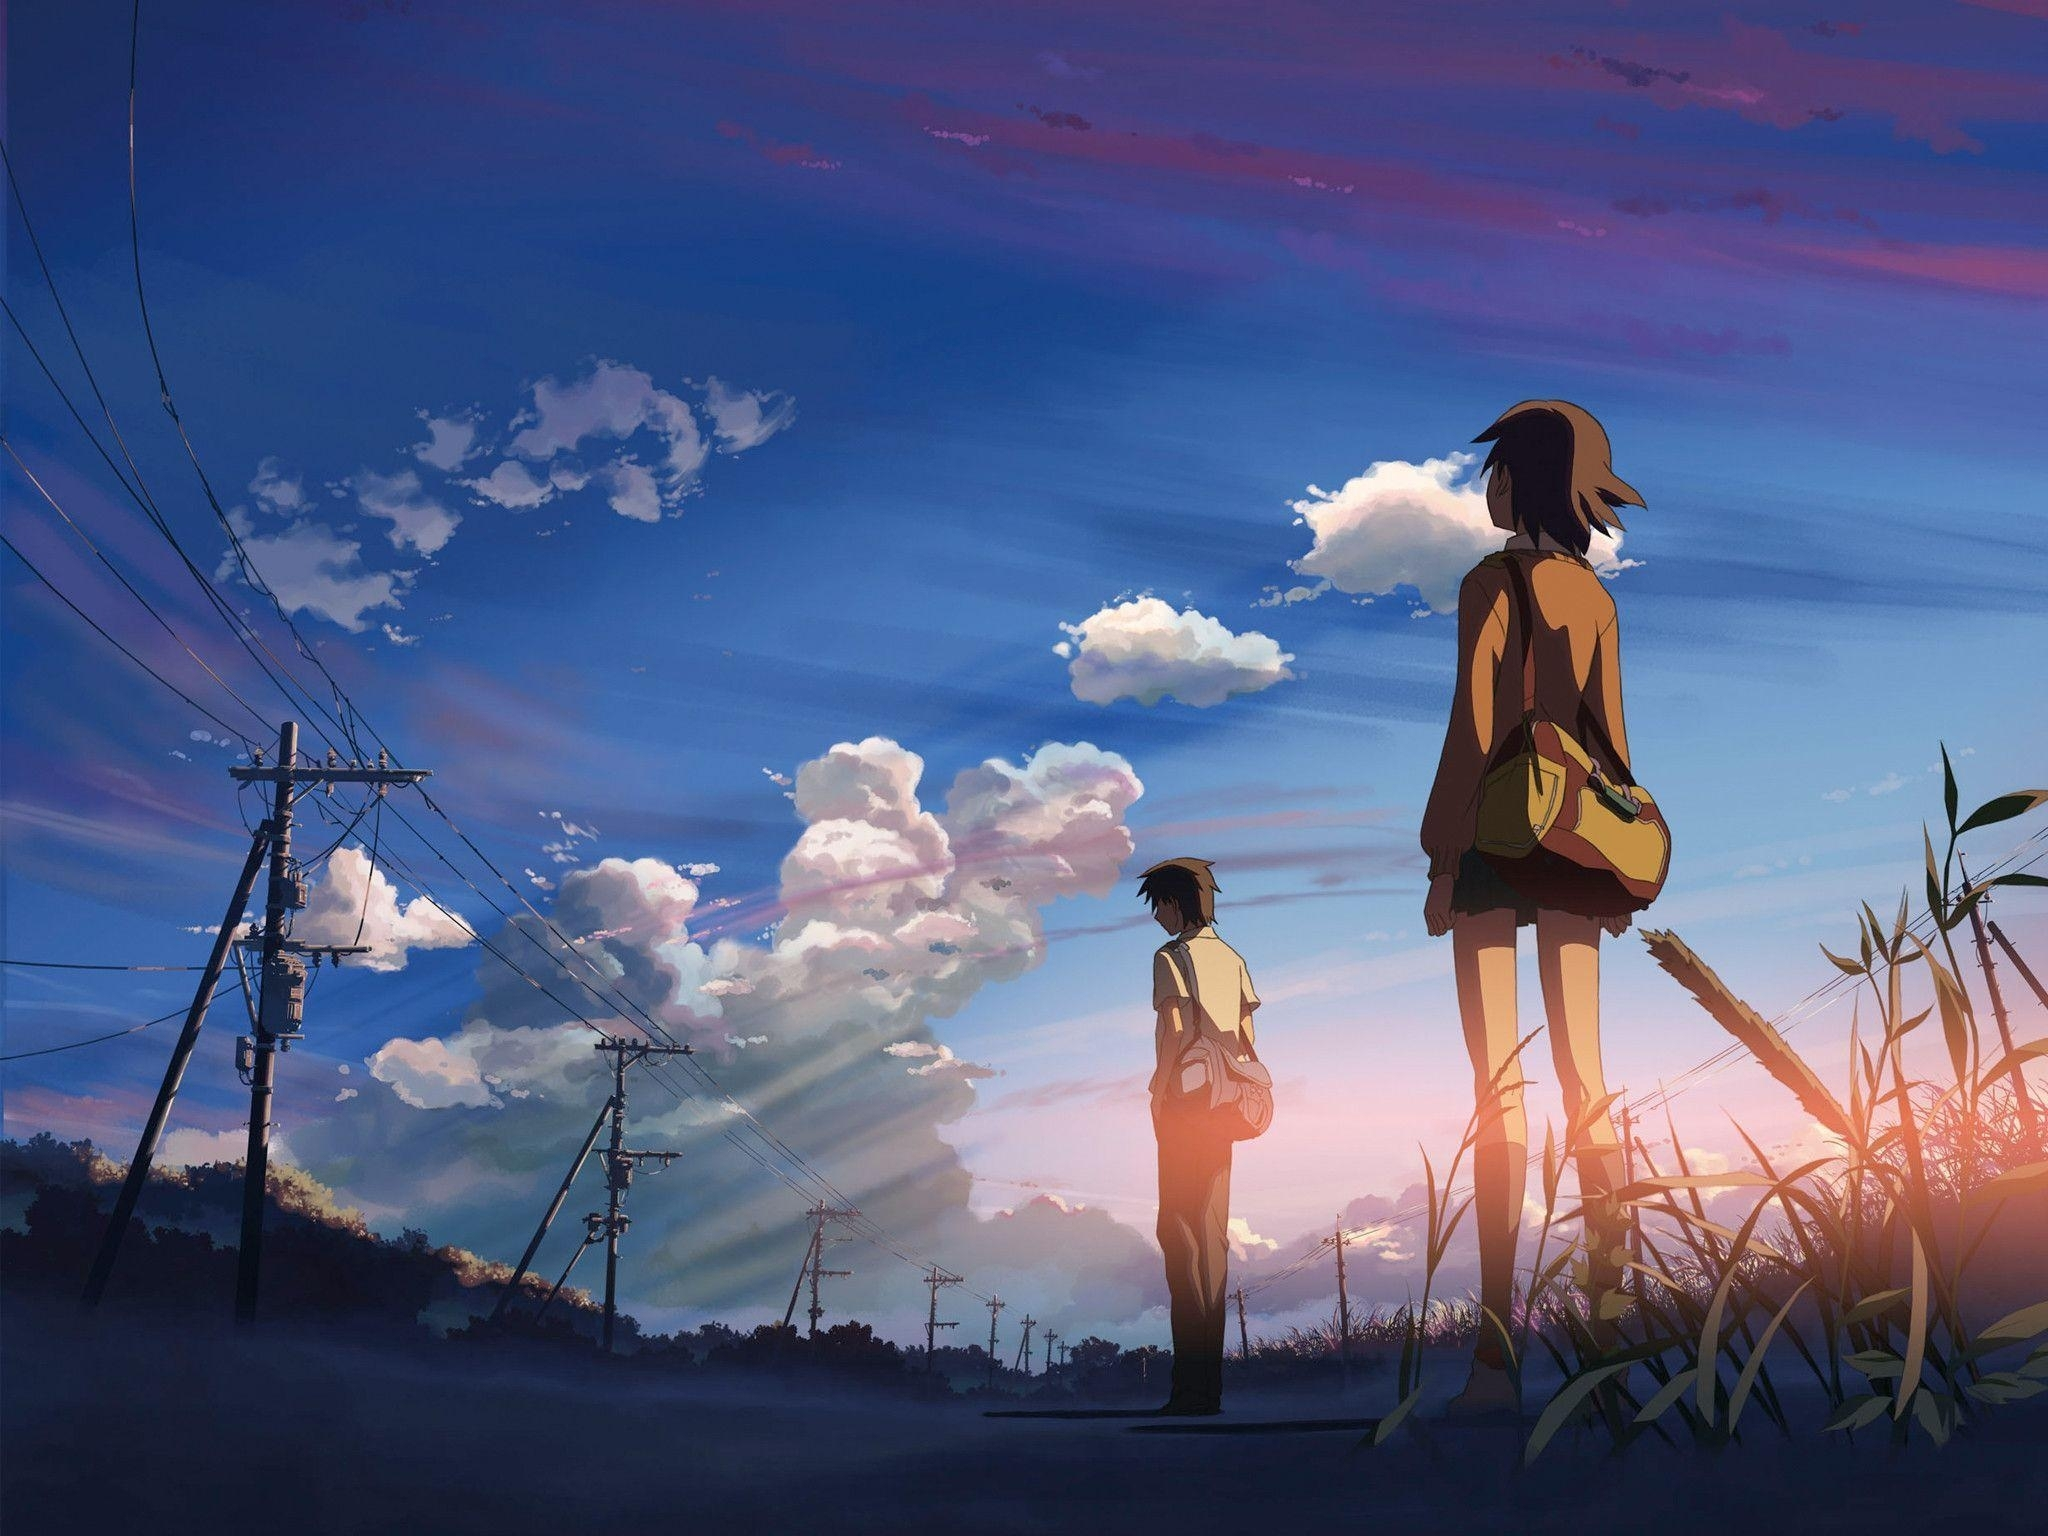 5 centimeters per second wallpapers - wallpaper cave